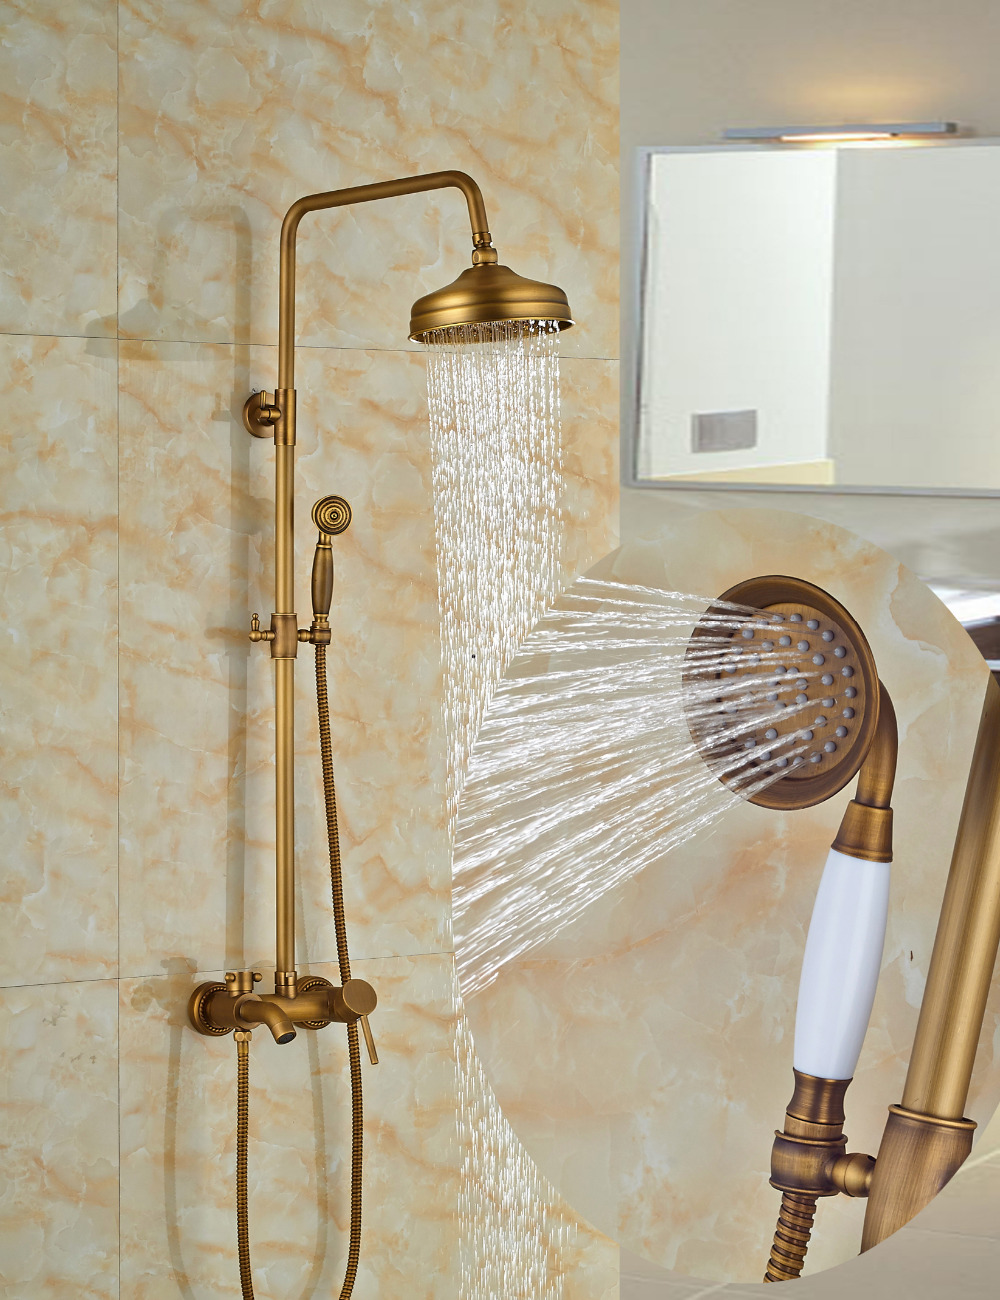 Genial Nellie Antique Brass Shower Set With 8 Inch Antique Brass Rain Shower Head, Handheld  Shower